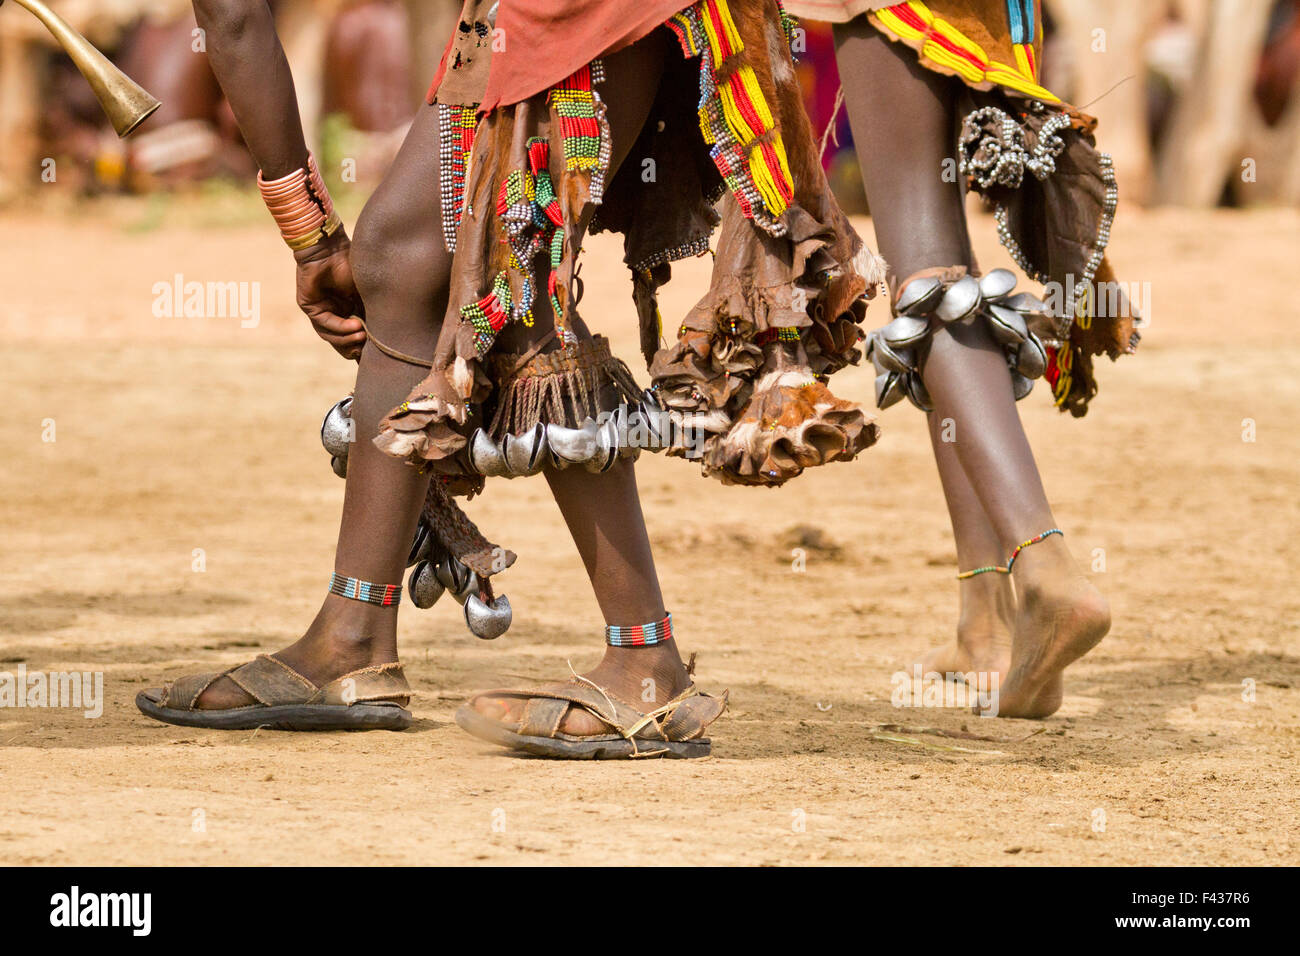 feet of Hamer women with bells at a tribal dance Omo Valley, Ethiopia - Stock Image